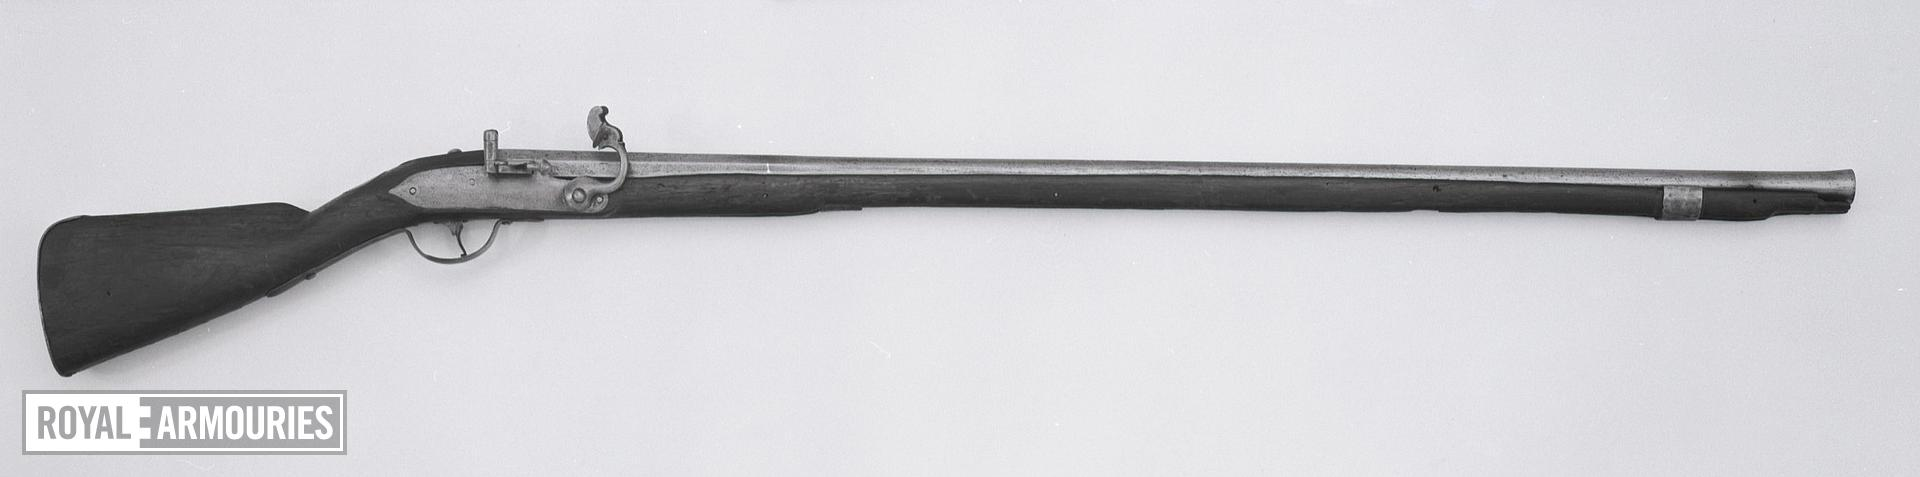 Matchlock military musket